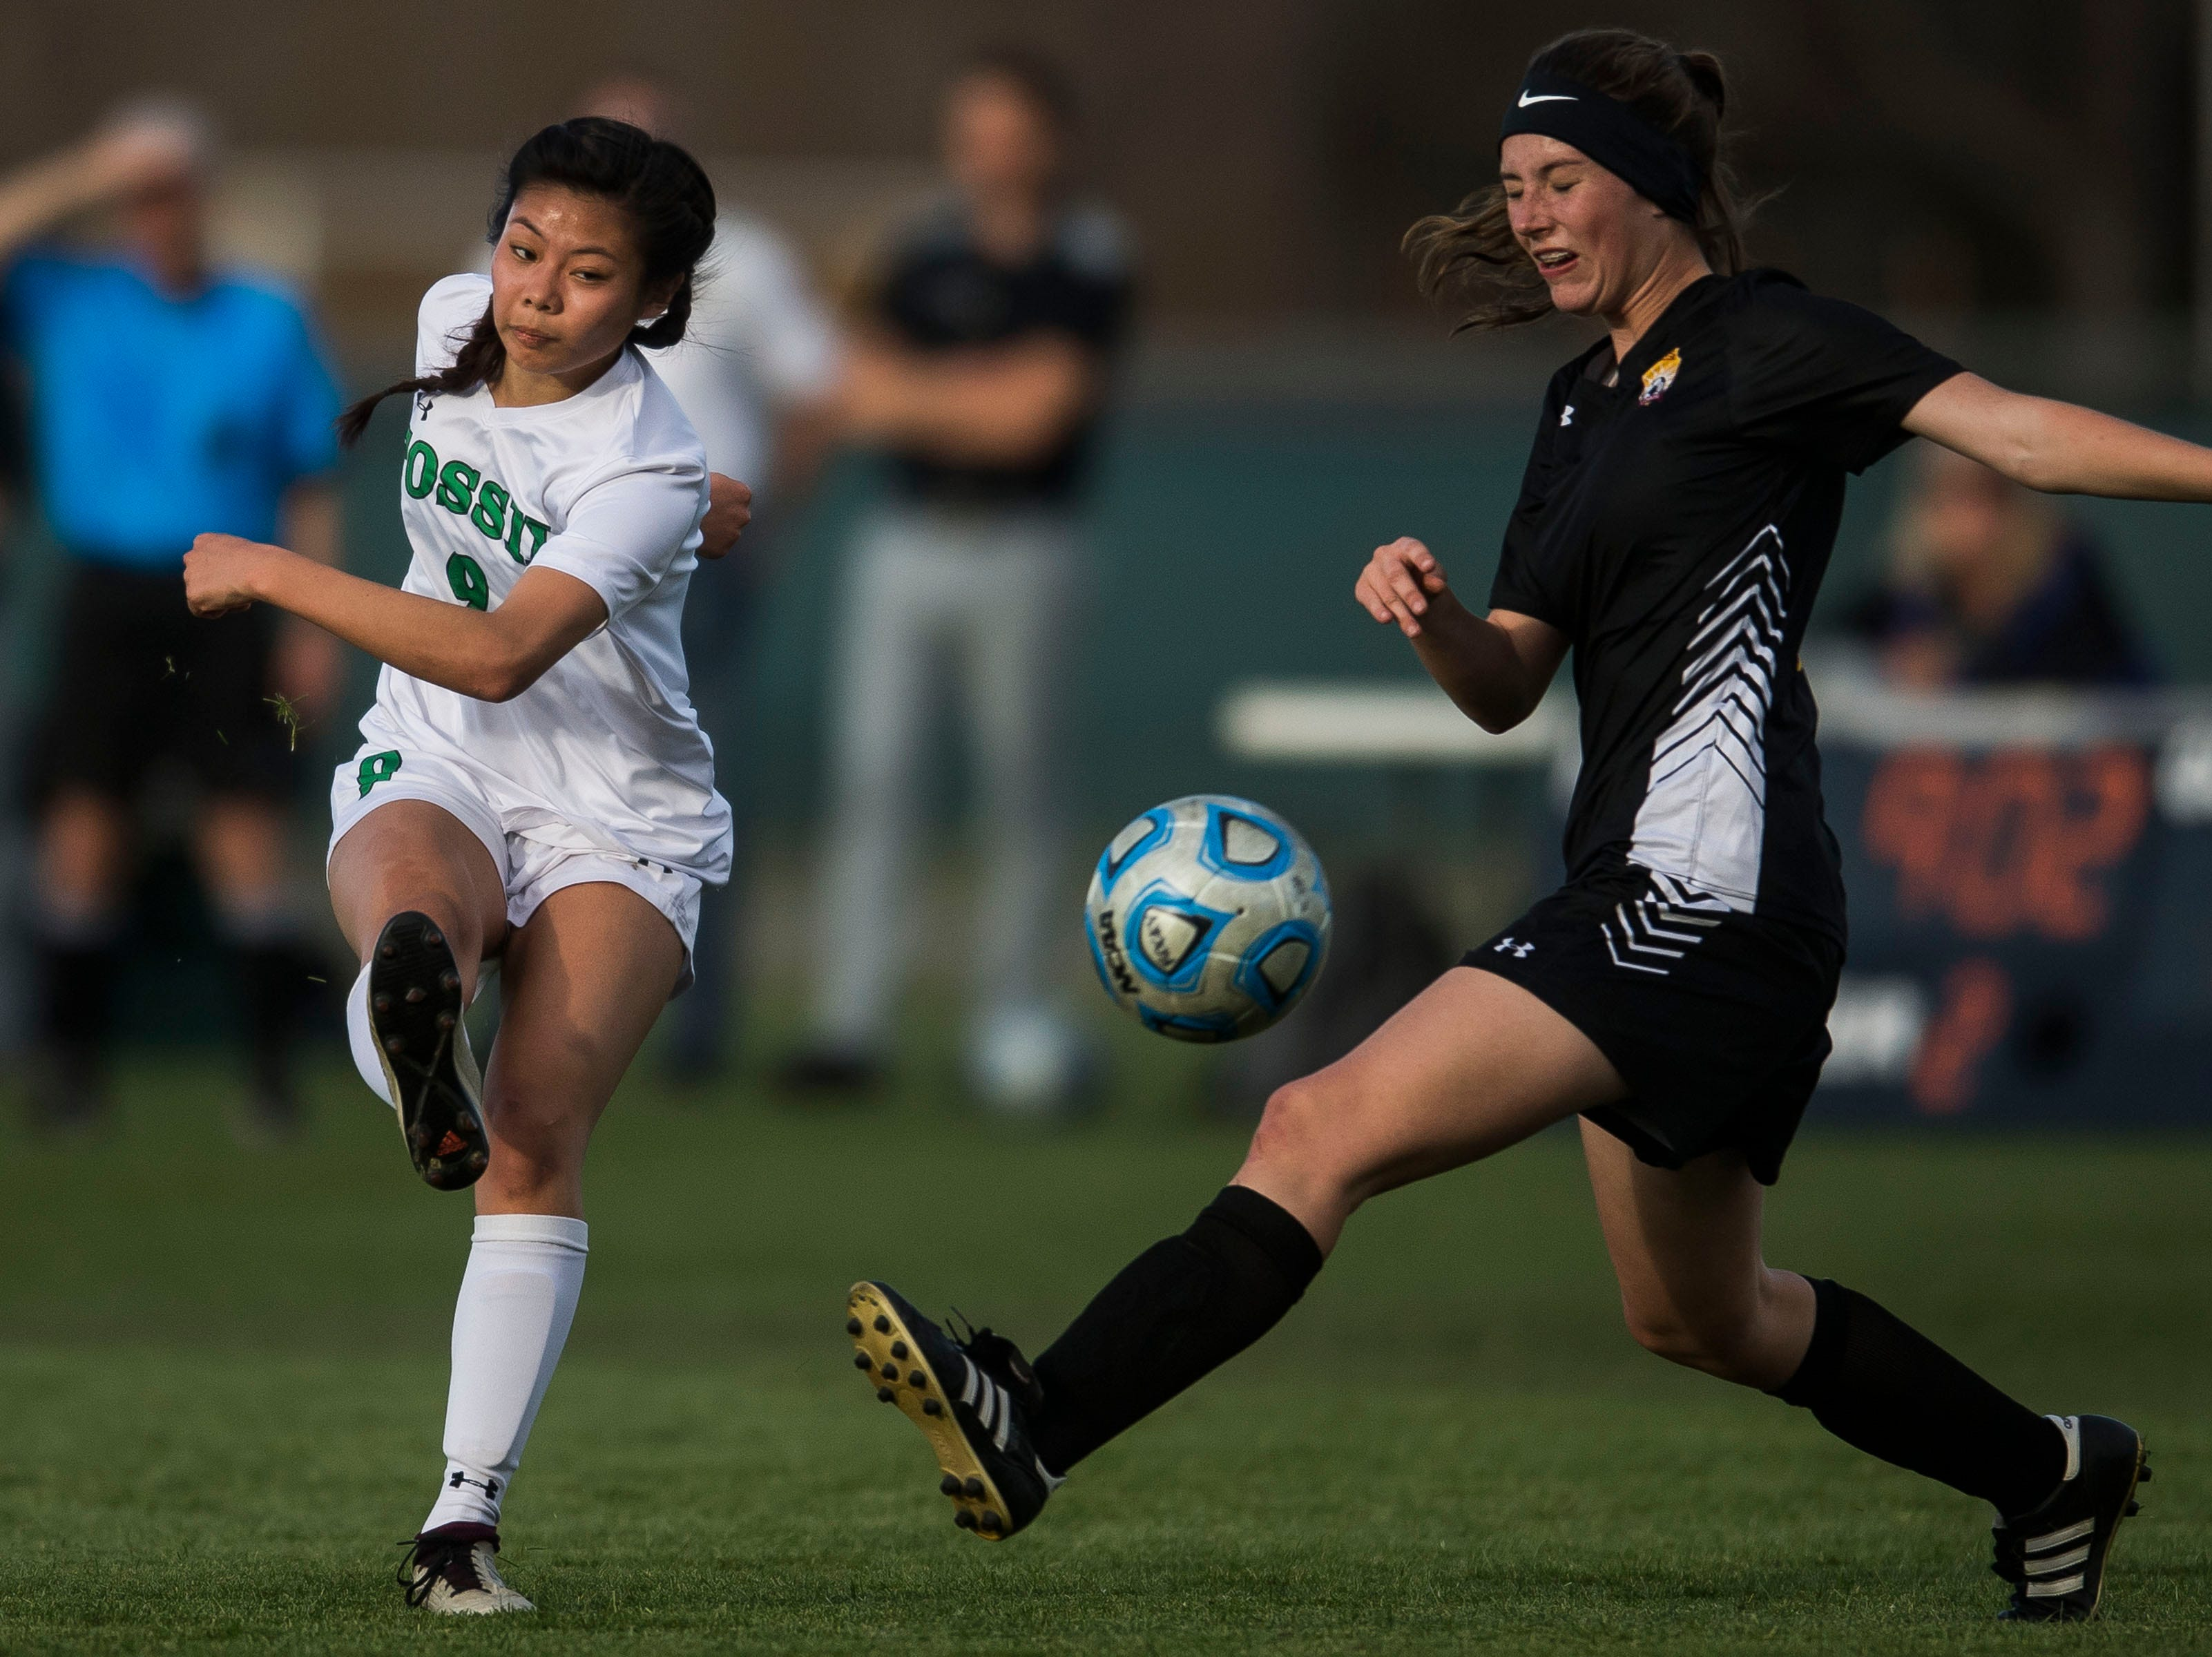 Fossil Ridge High School senior Susan Hsin (9) takes a shot during a game against Rocky Mountain High School on Friday, April 4, 2019, at Colorado State University's soccer field in Fort Collins, Colo.